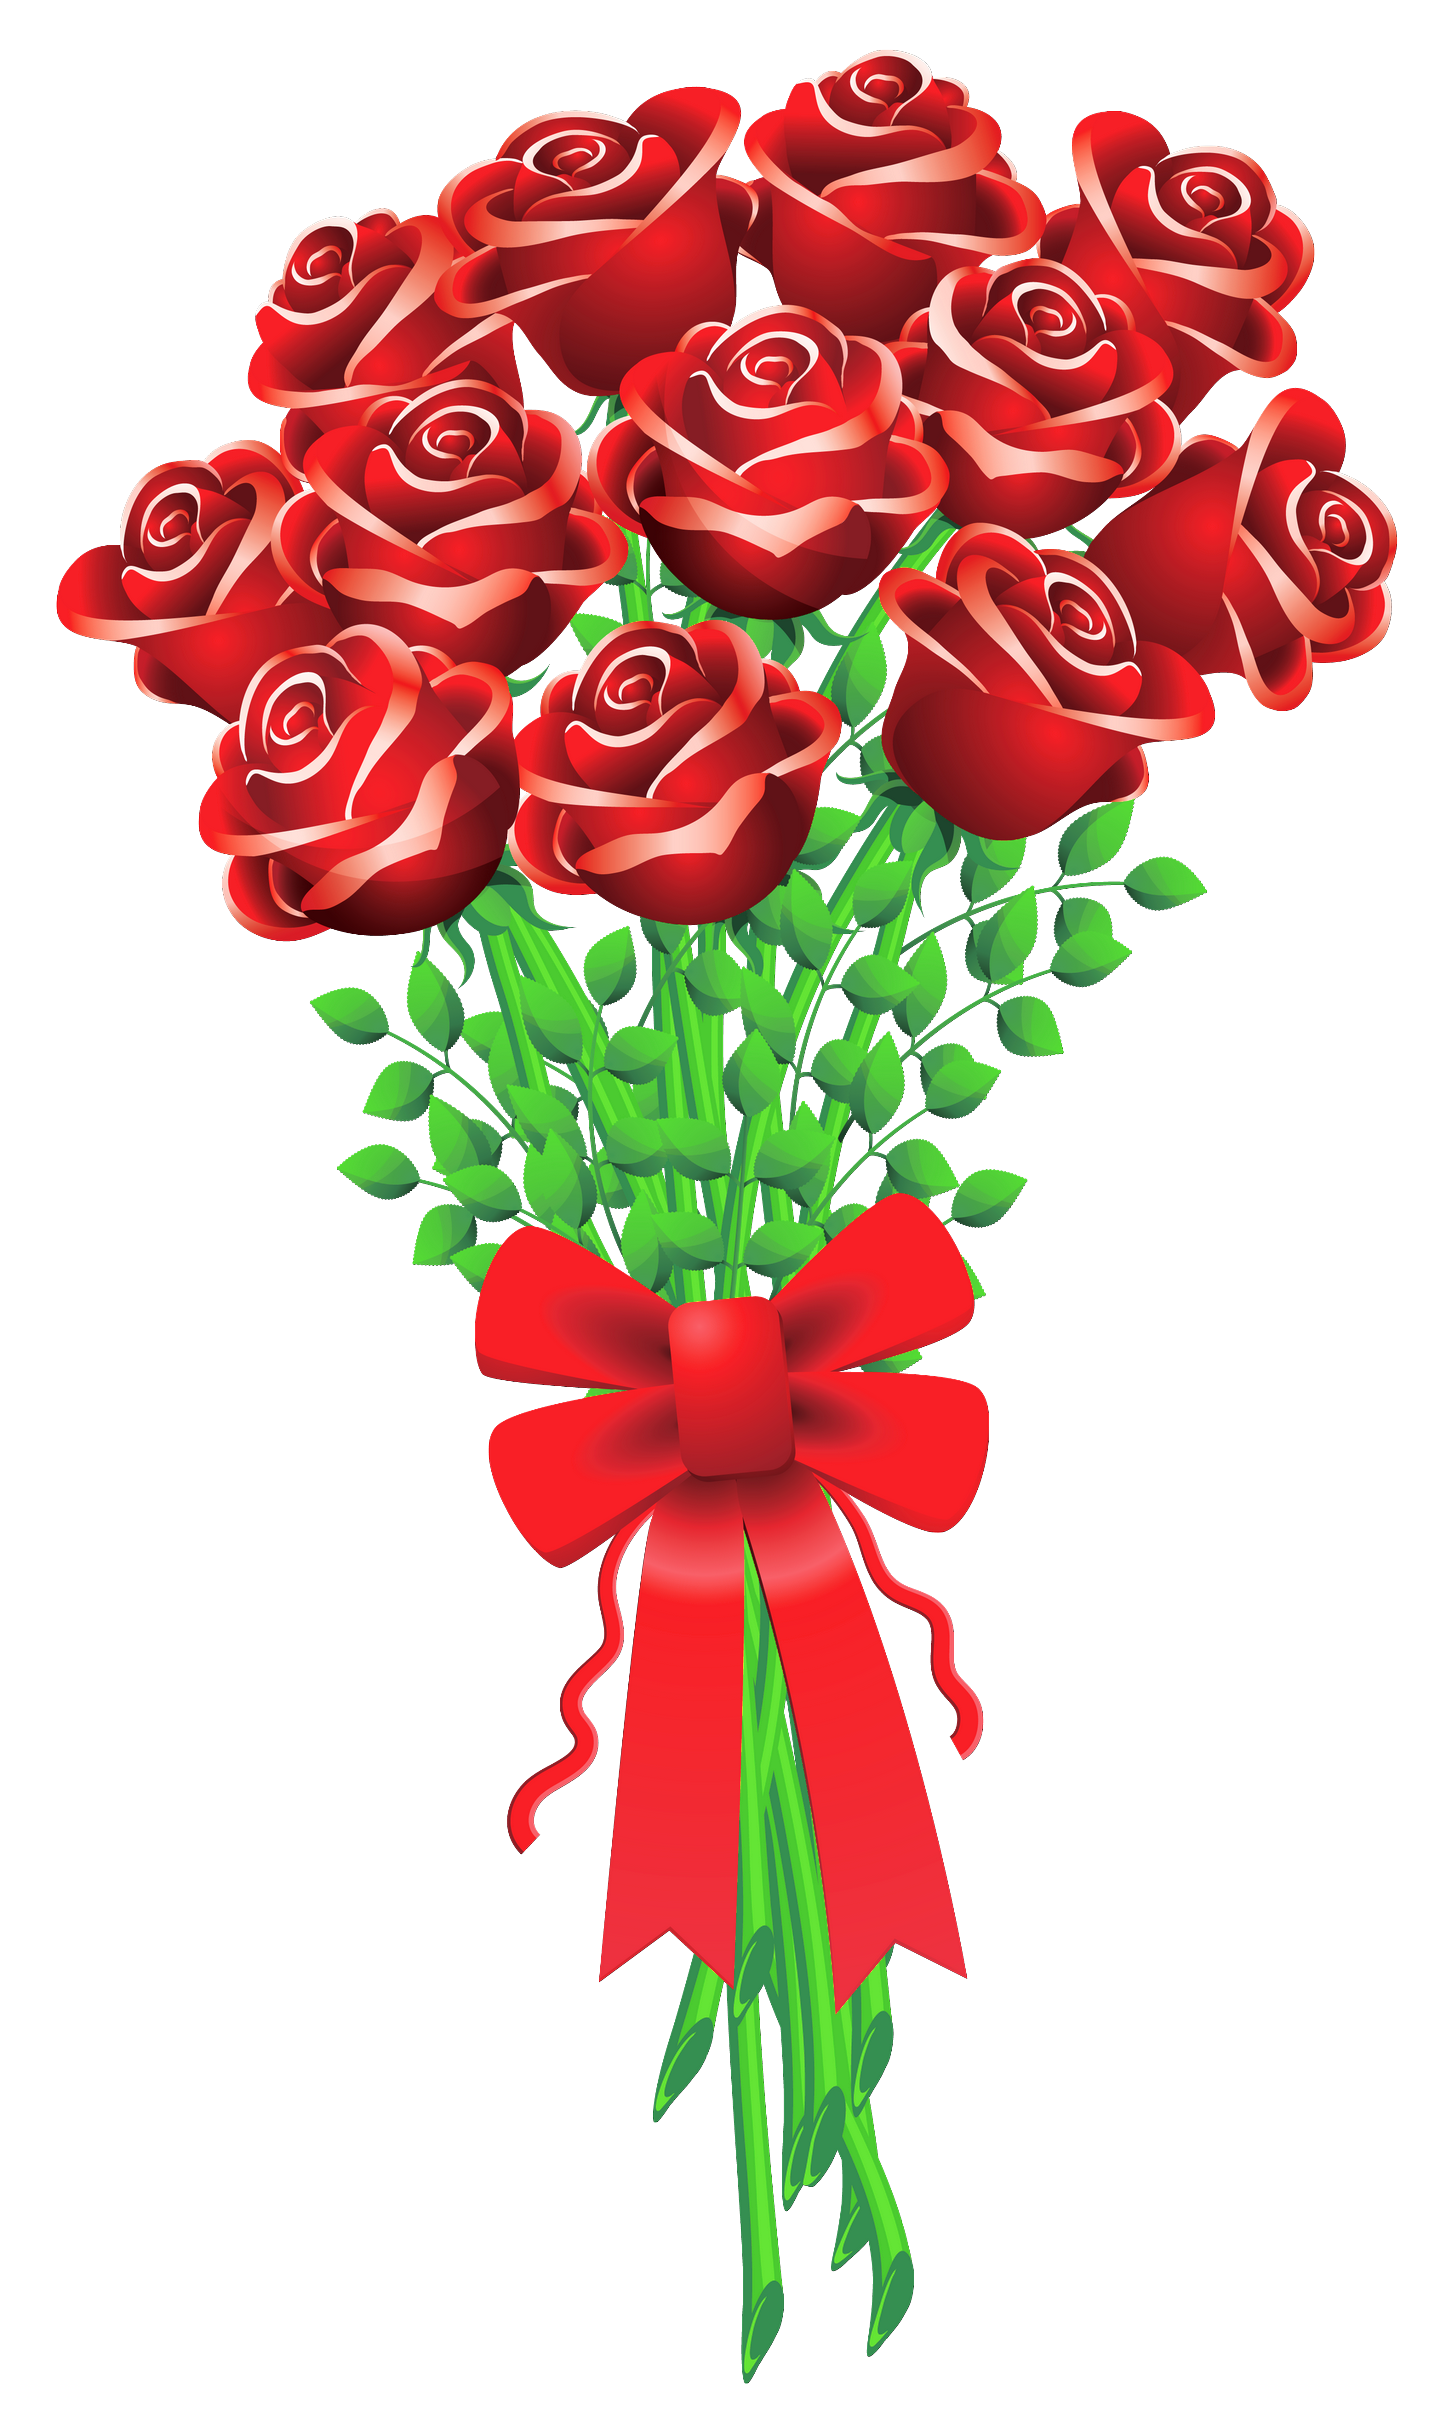 Roses rose bouquet cartoon clipart clipart kid.